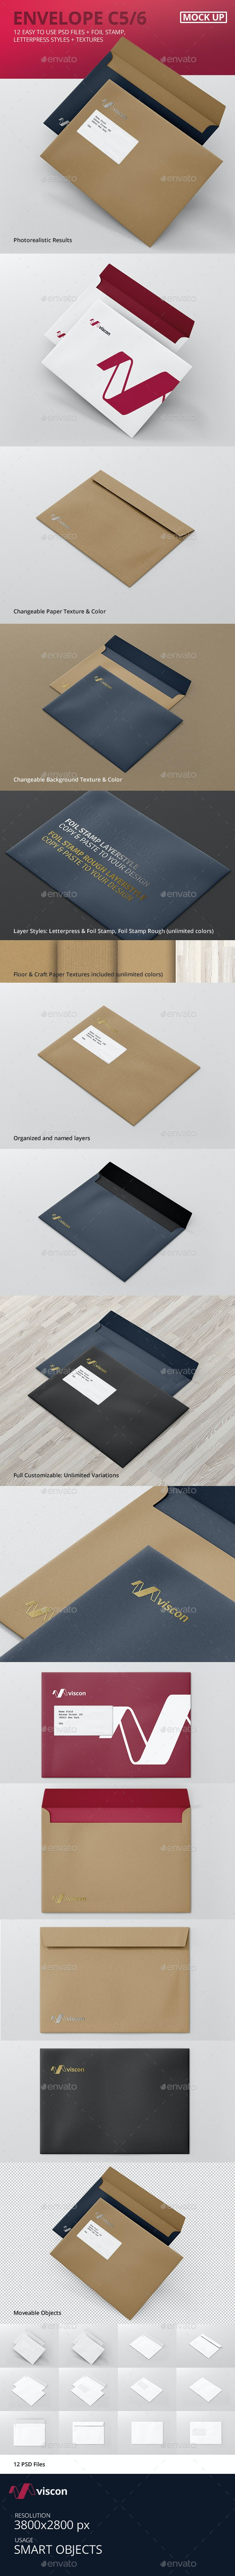 Envelope C5 Mock-Up - Stationery Print